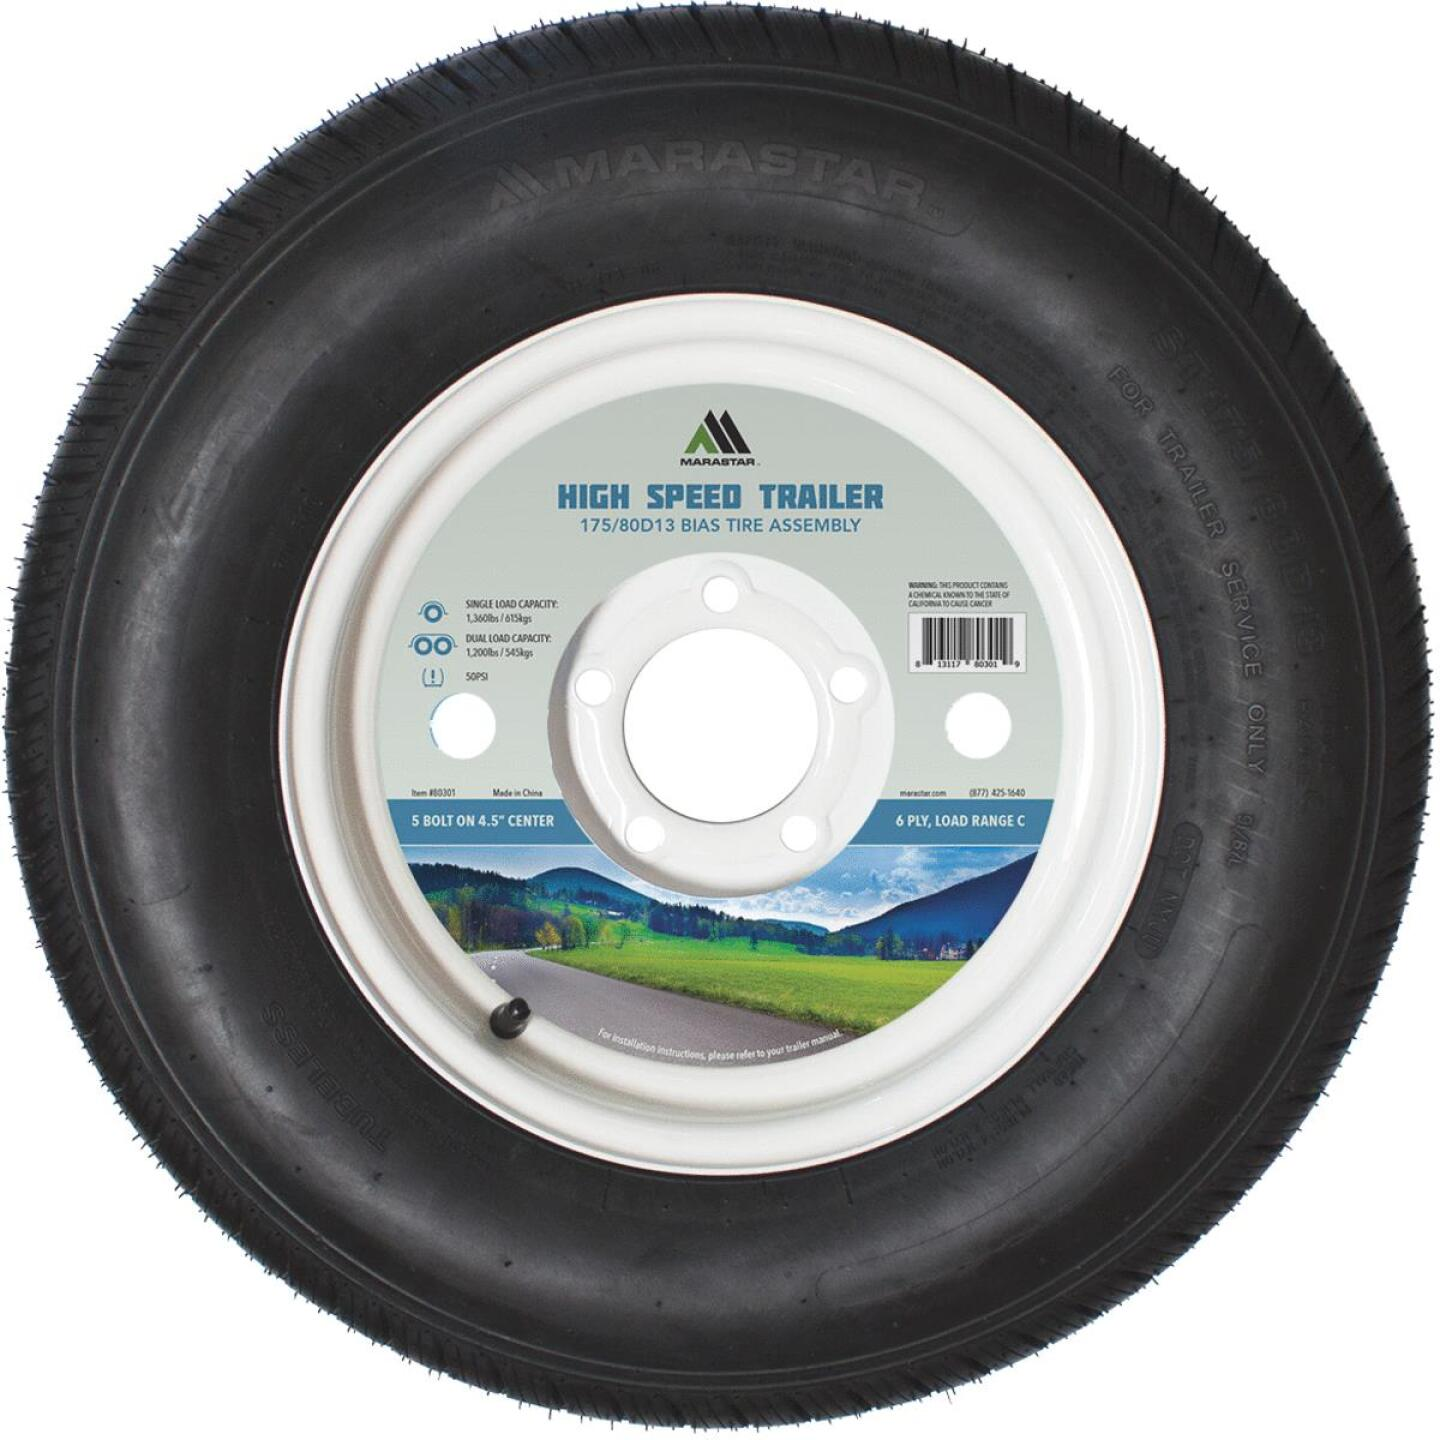 Marastar 175/80D13 Load Range C 5-Lug Trailer Tire and Wheel Image 1